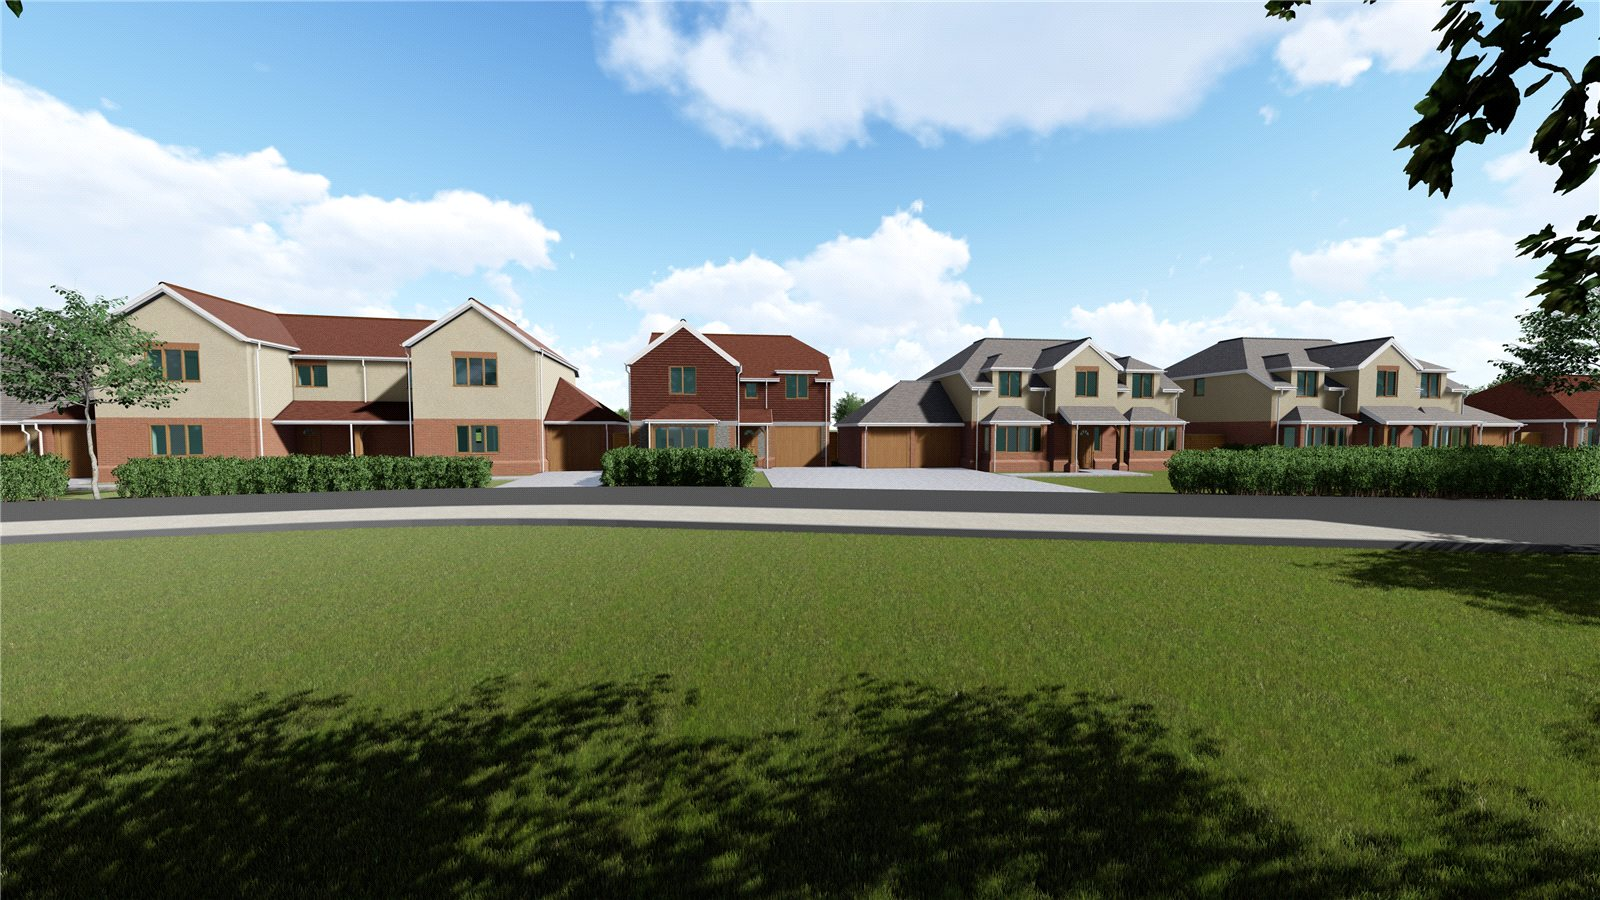 3 bed house for sale in Starlings View, Arundel Road, Angmering 1